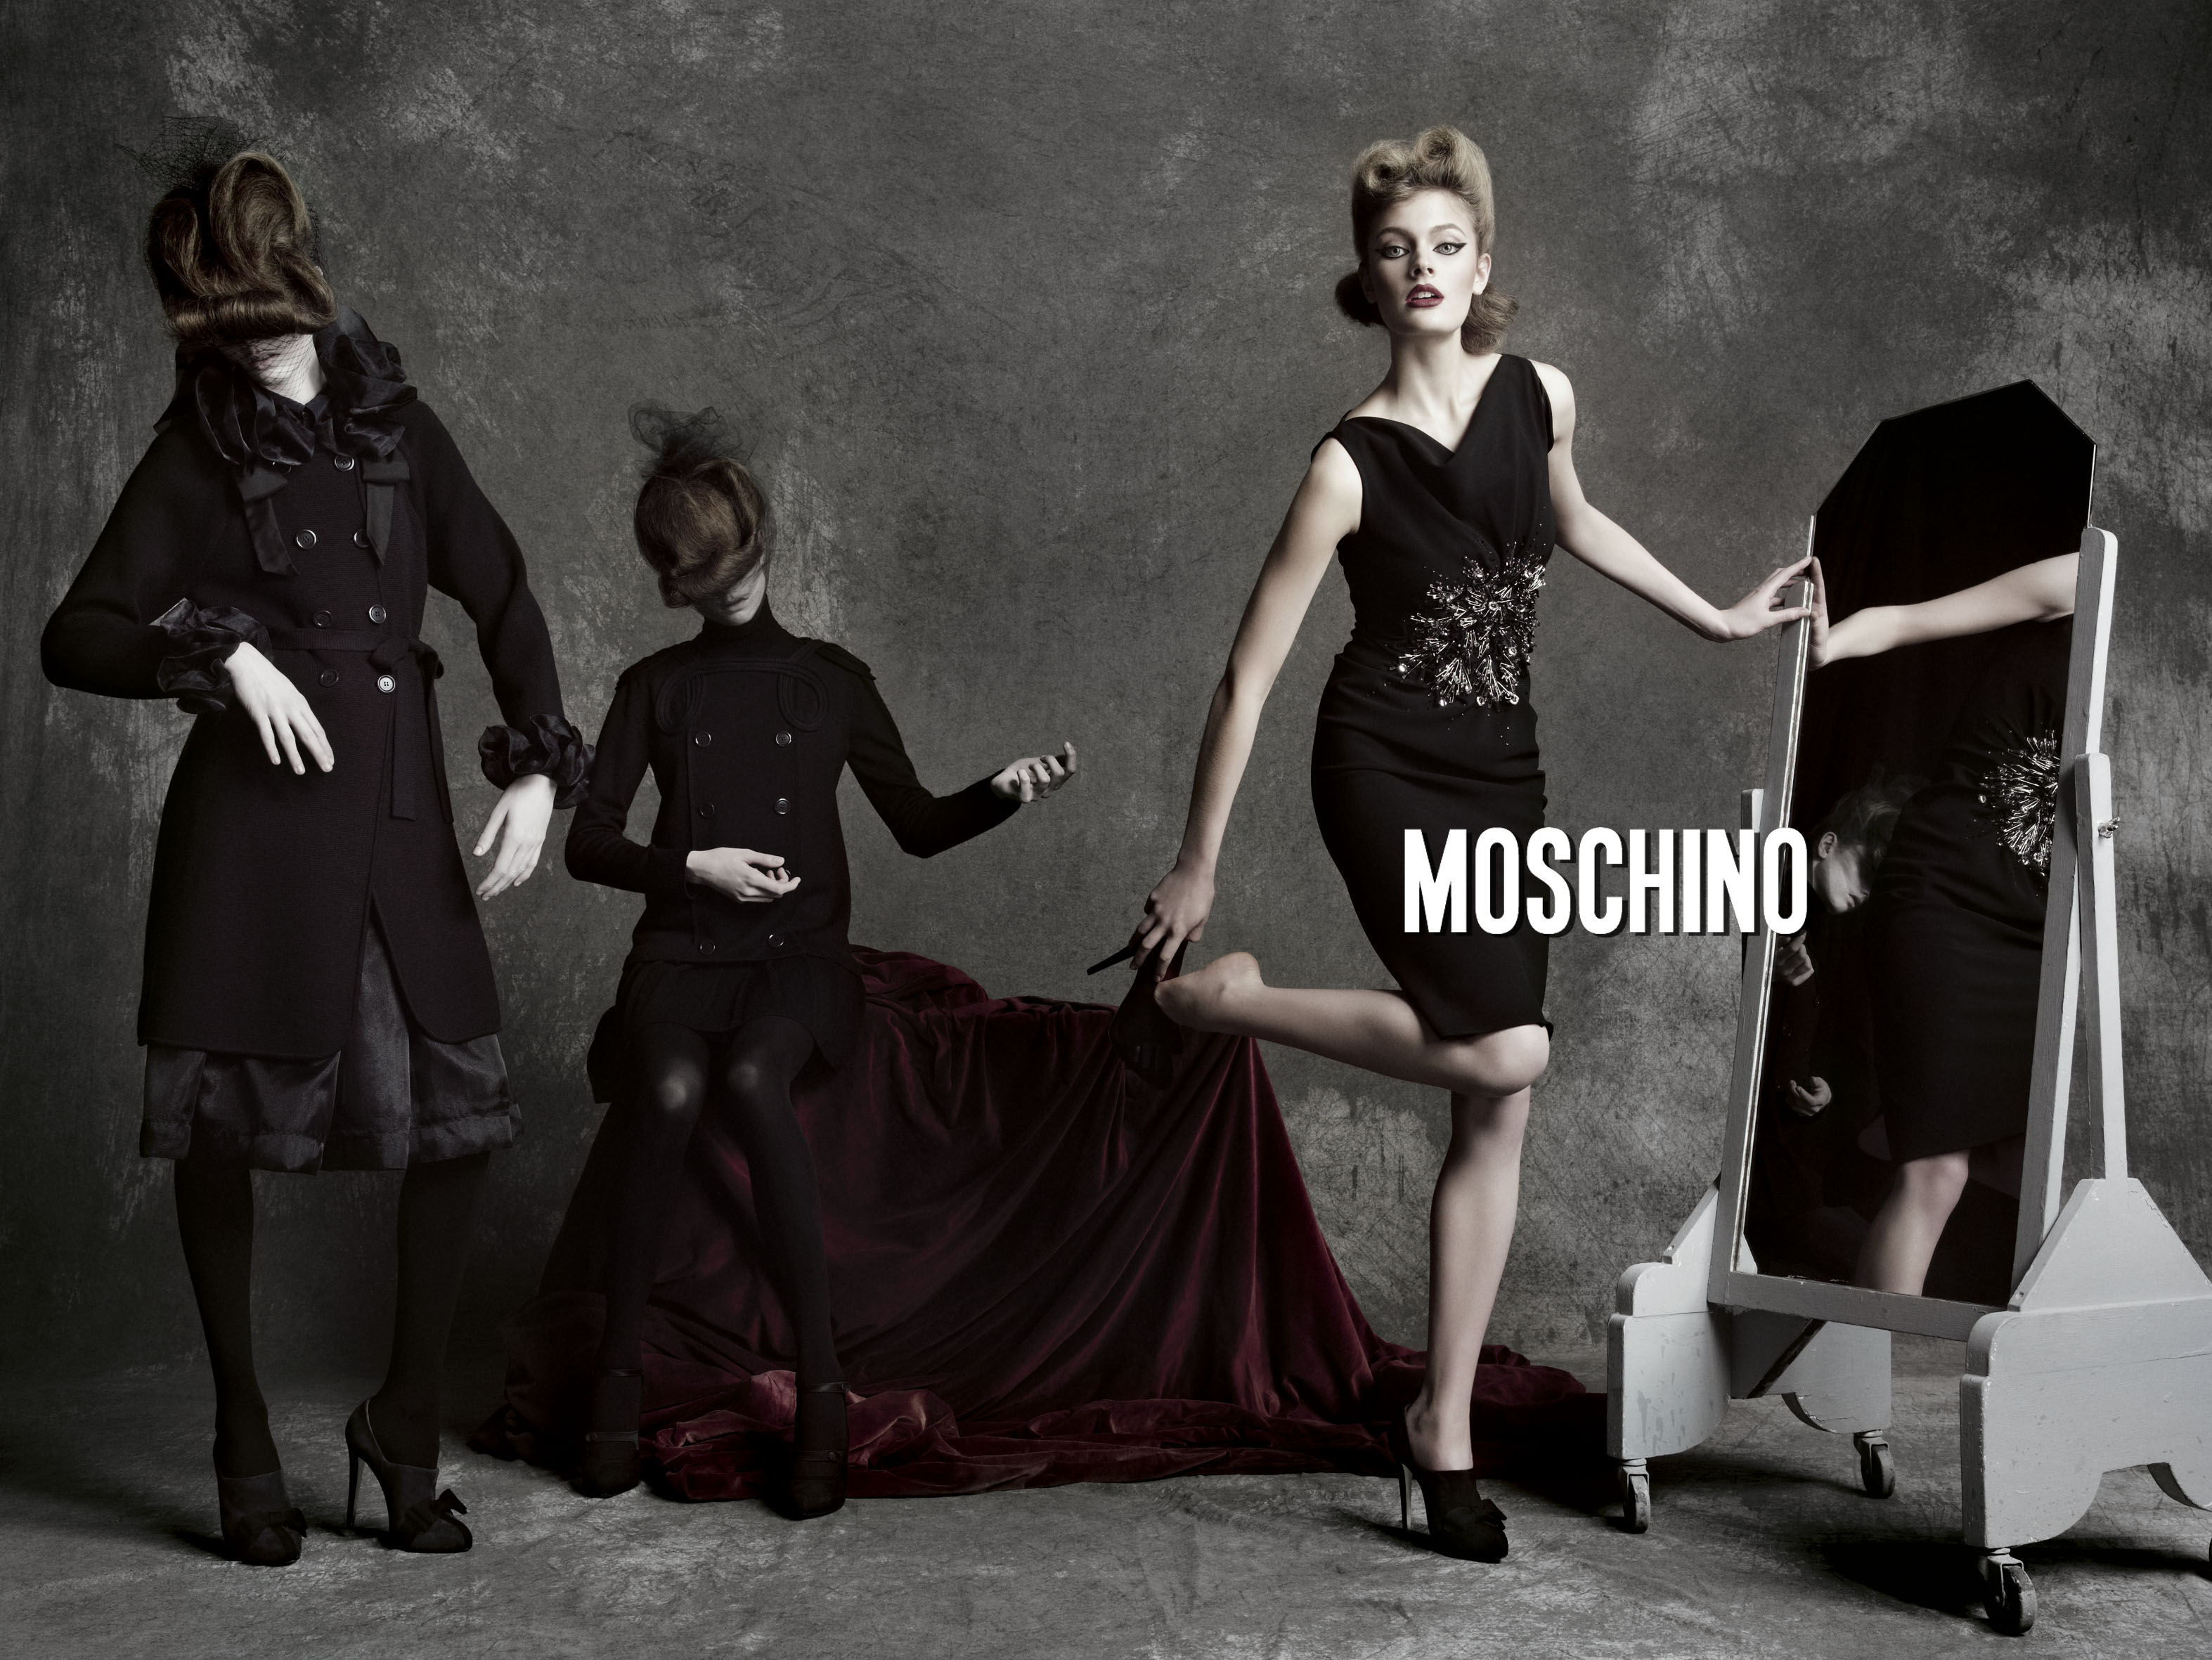 Moschino Fall 2009 | Tom Munro | Moschino | Numerique Retouch Photo Retouching Studio